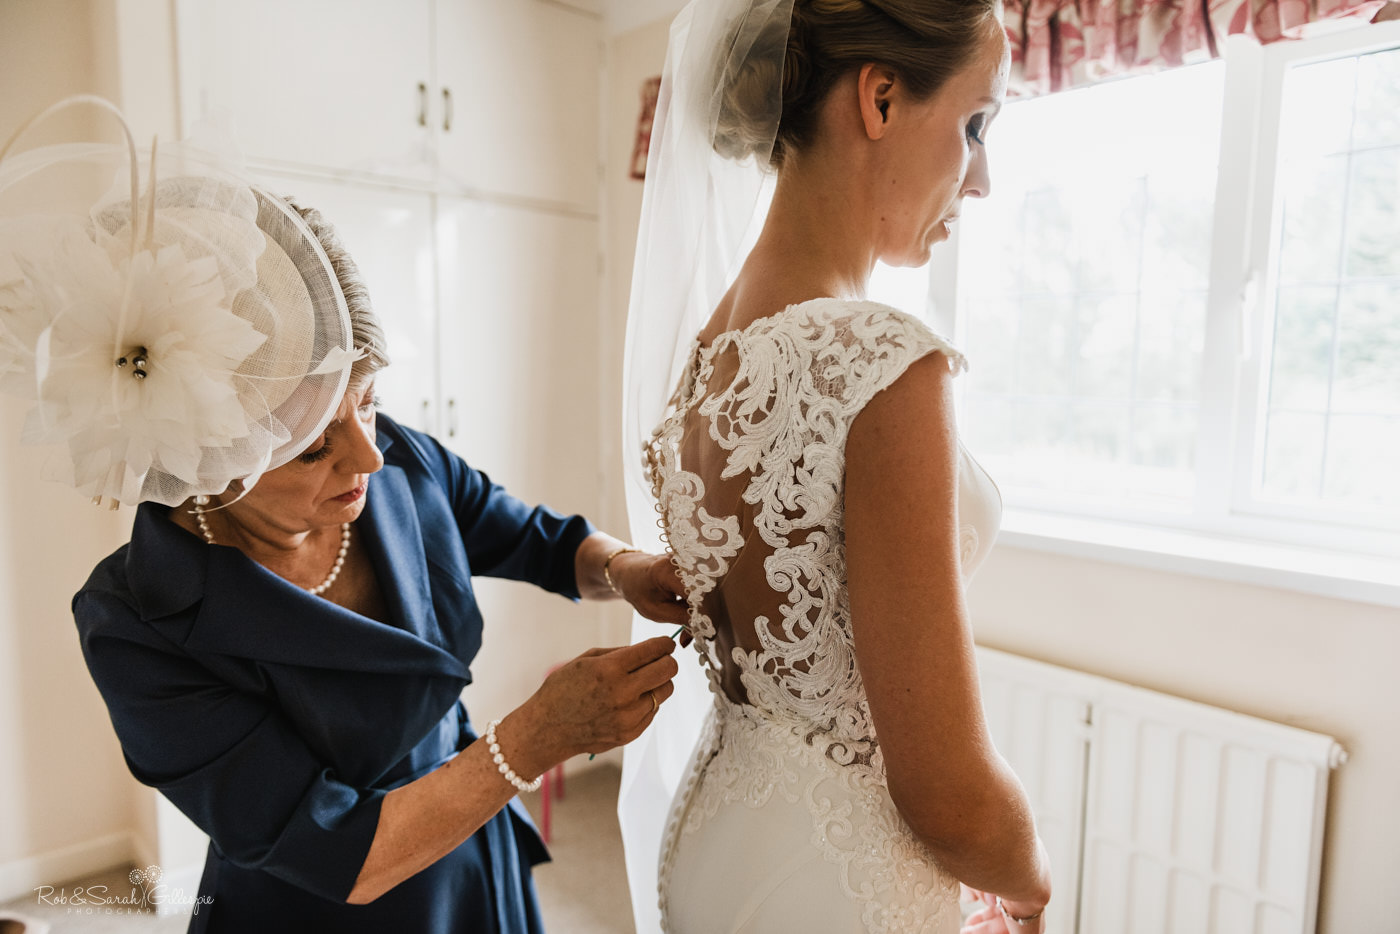 Bride preparing for wedding at St Kenelm's church in Romsley, Worcestershire